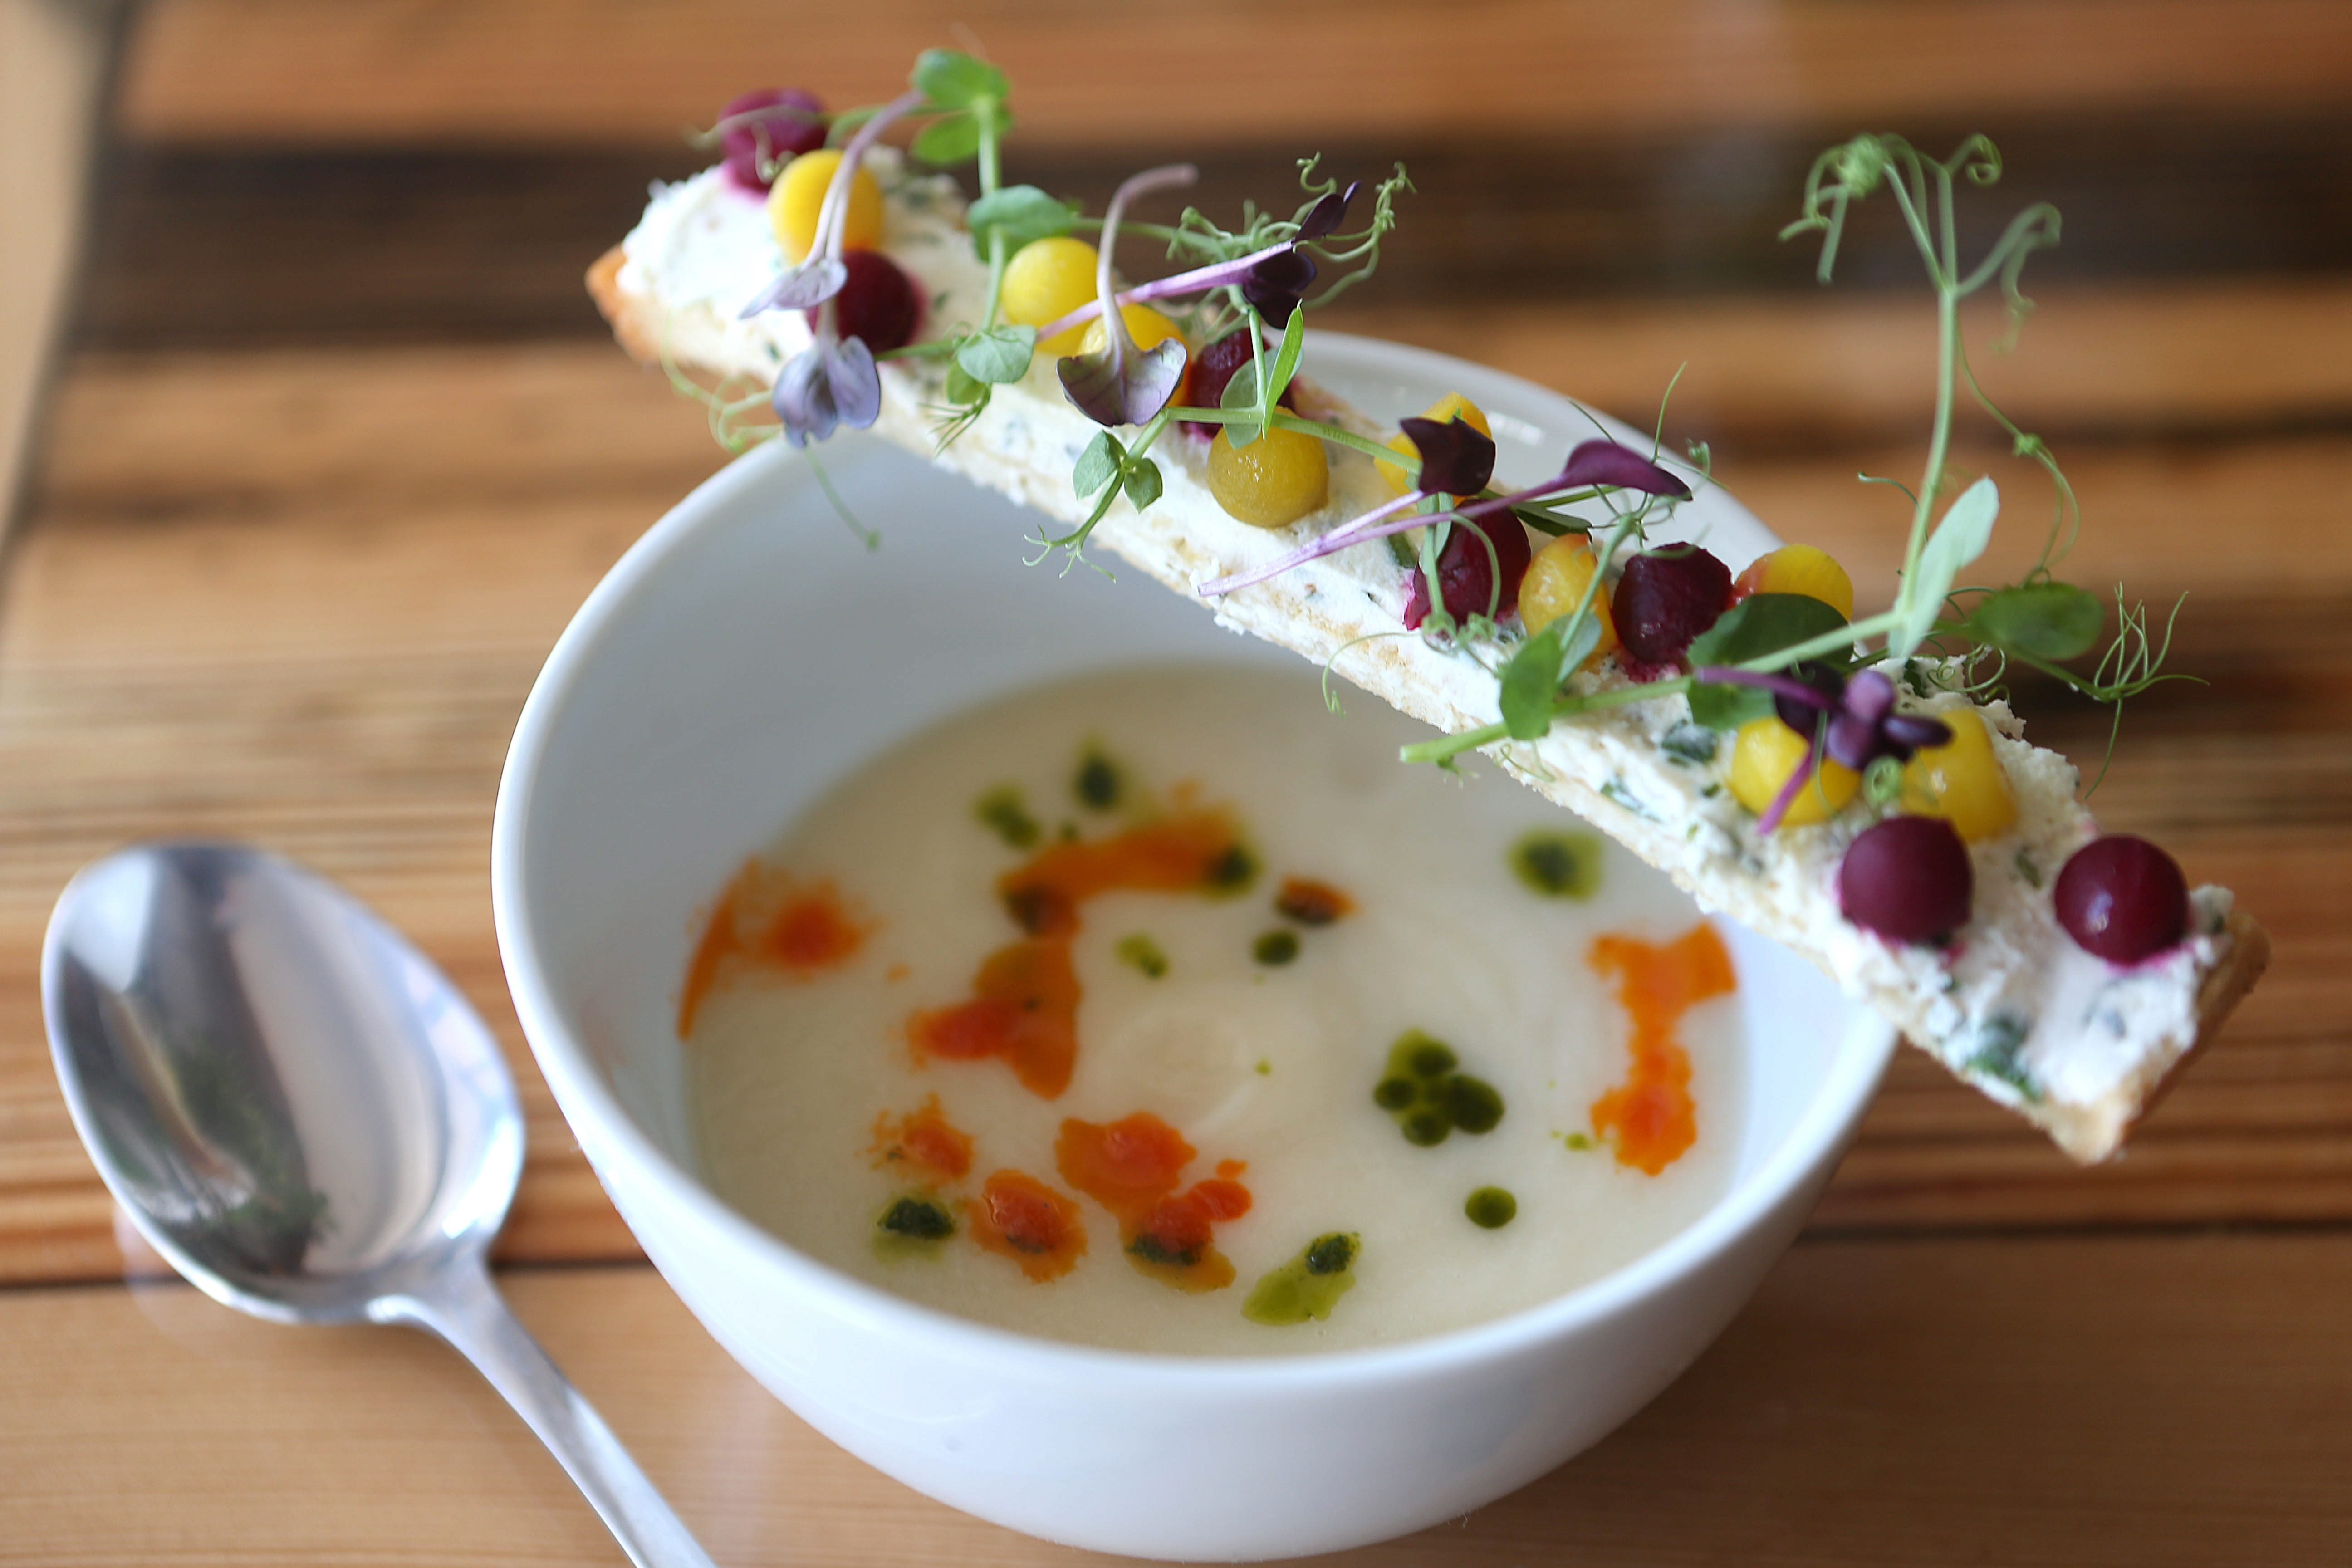 The Pear and Parsnip soup at Martin Cooks in Buffalo on Thursday, Sept. 19, 2013.  (Robert Kirkham/Buffalo News)